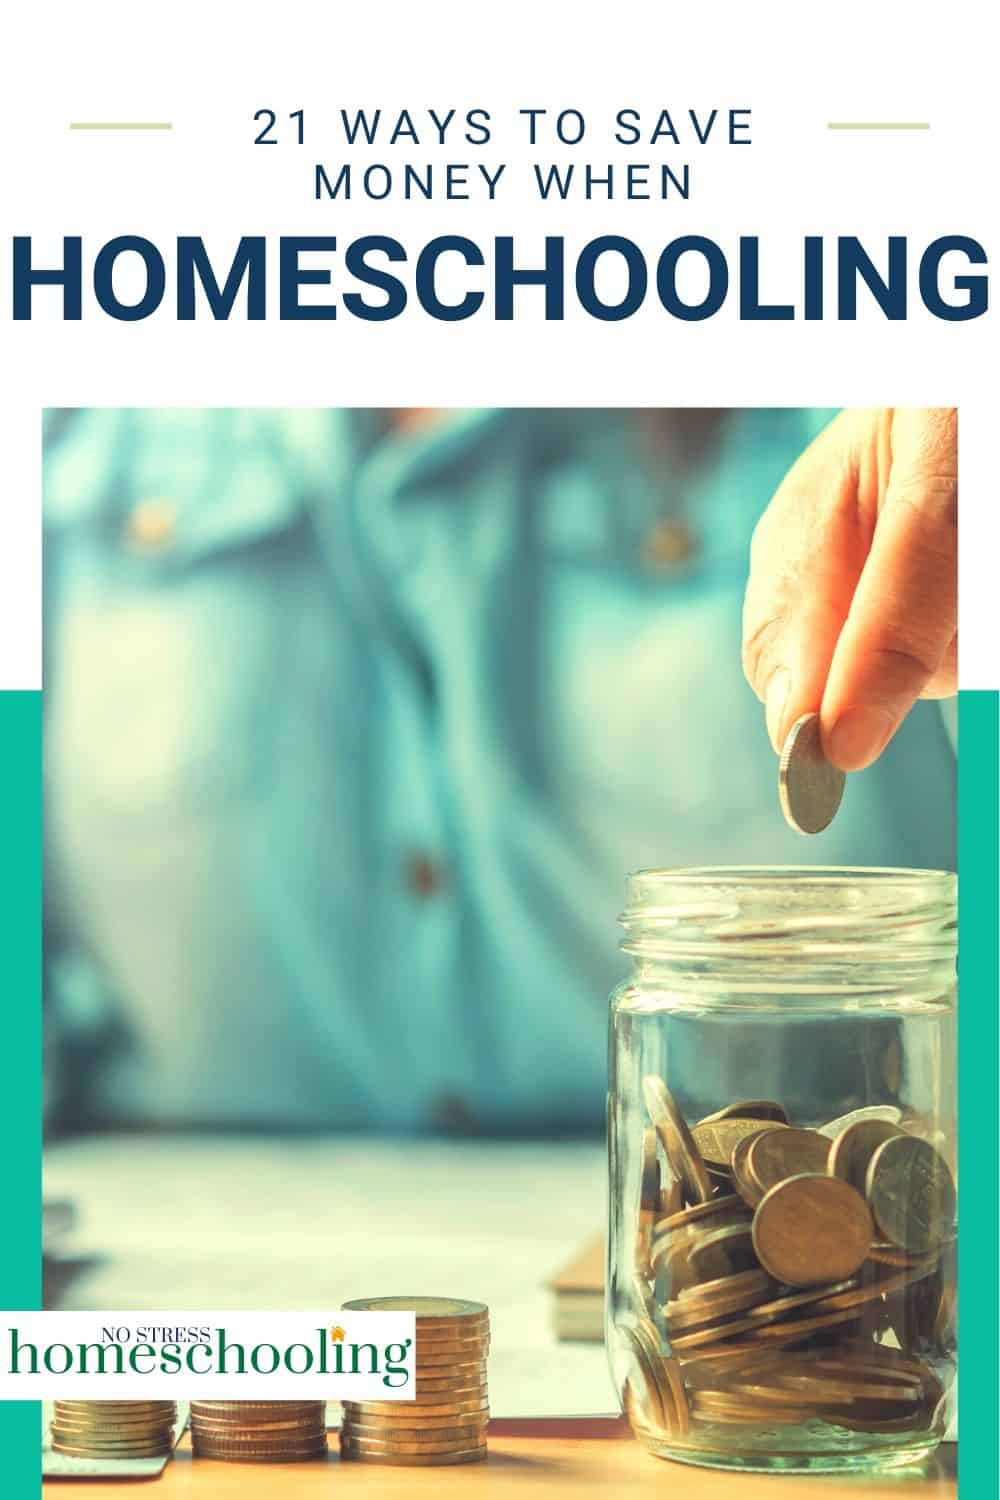 image showing 21 ways to save money when homeschooling